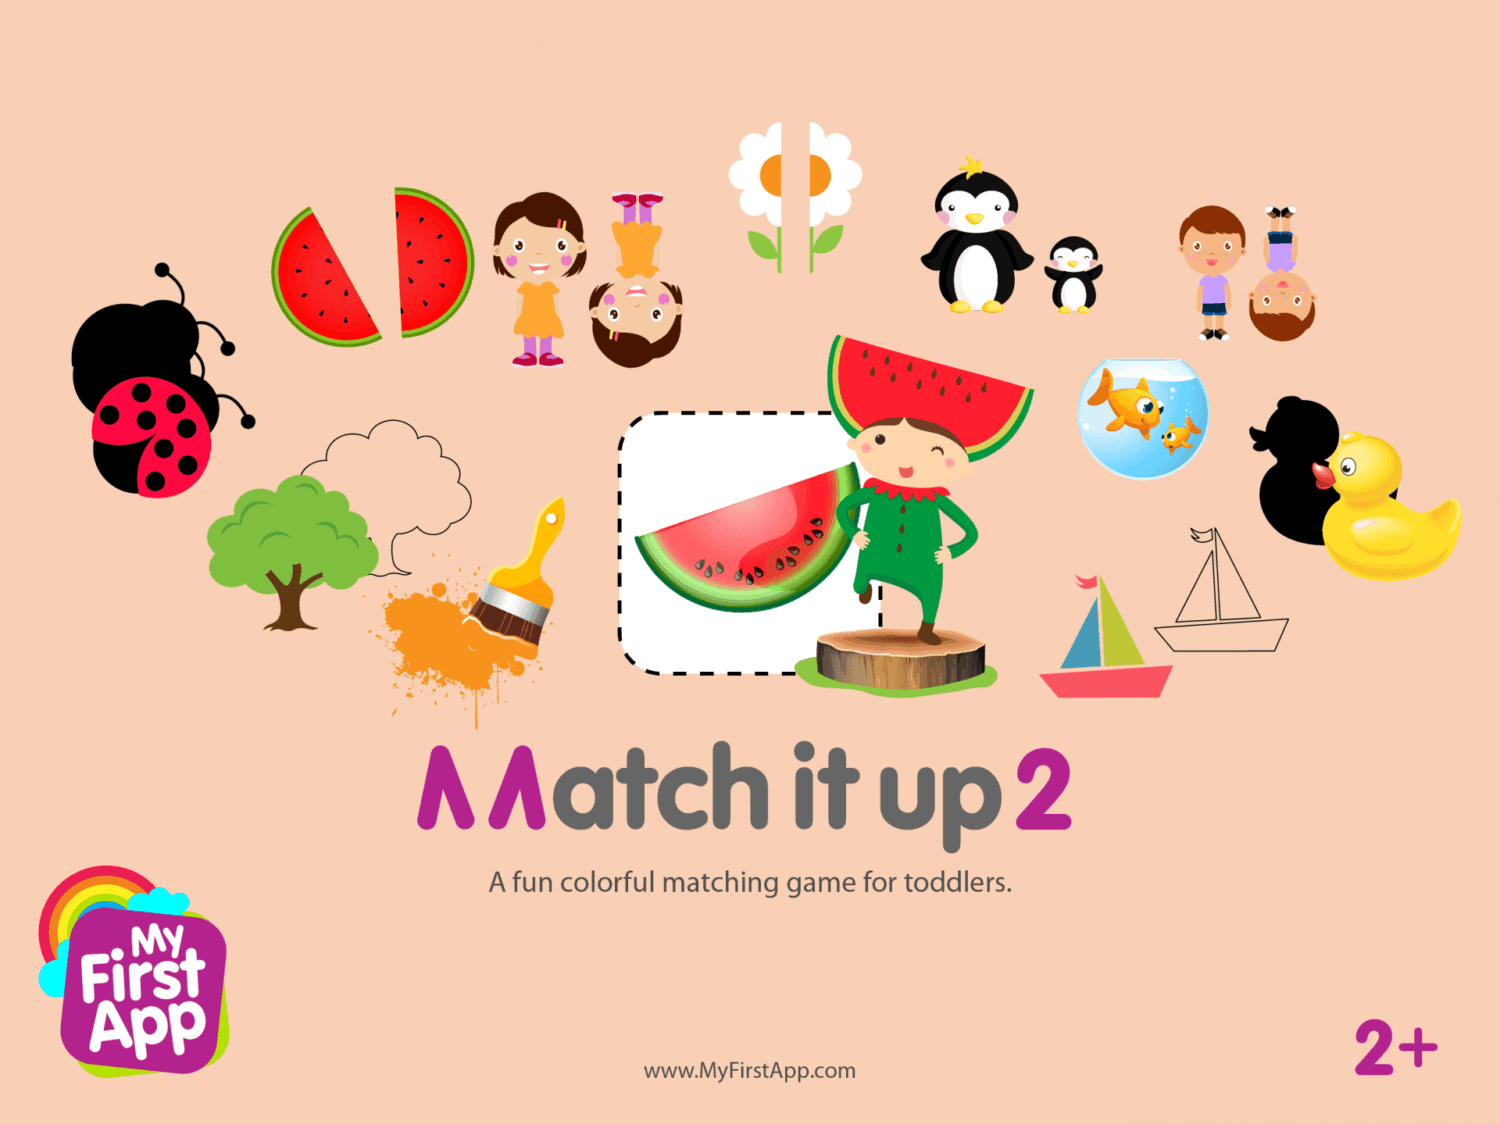 A fun colorful matching game for toddlers.